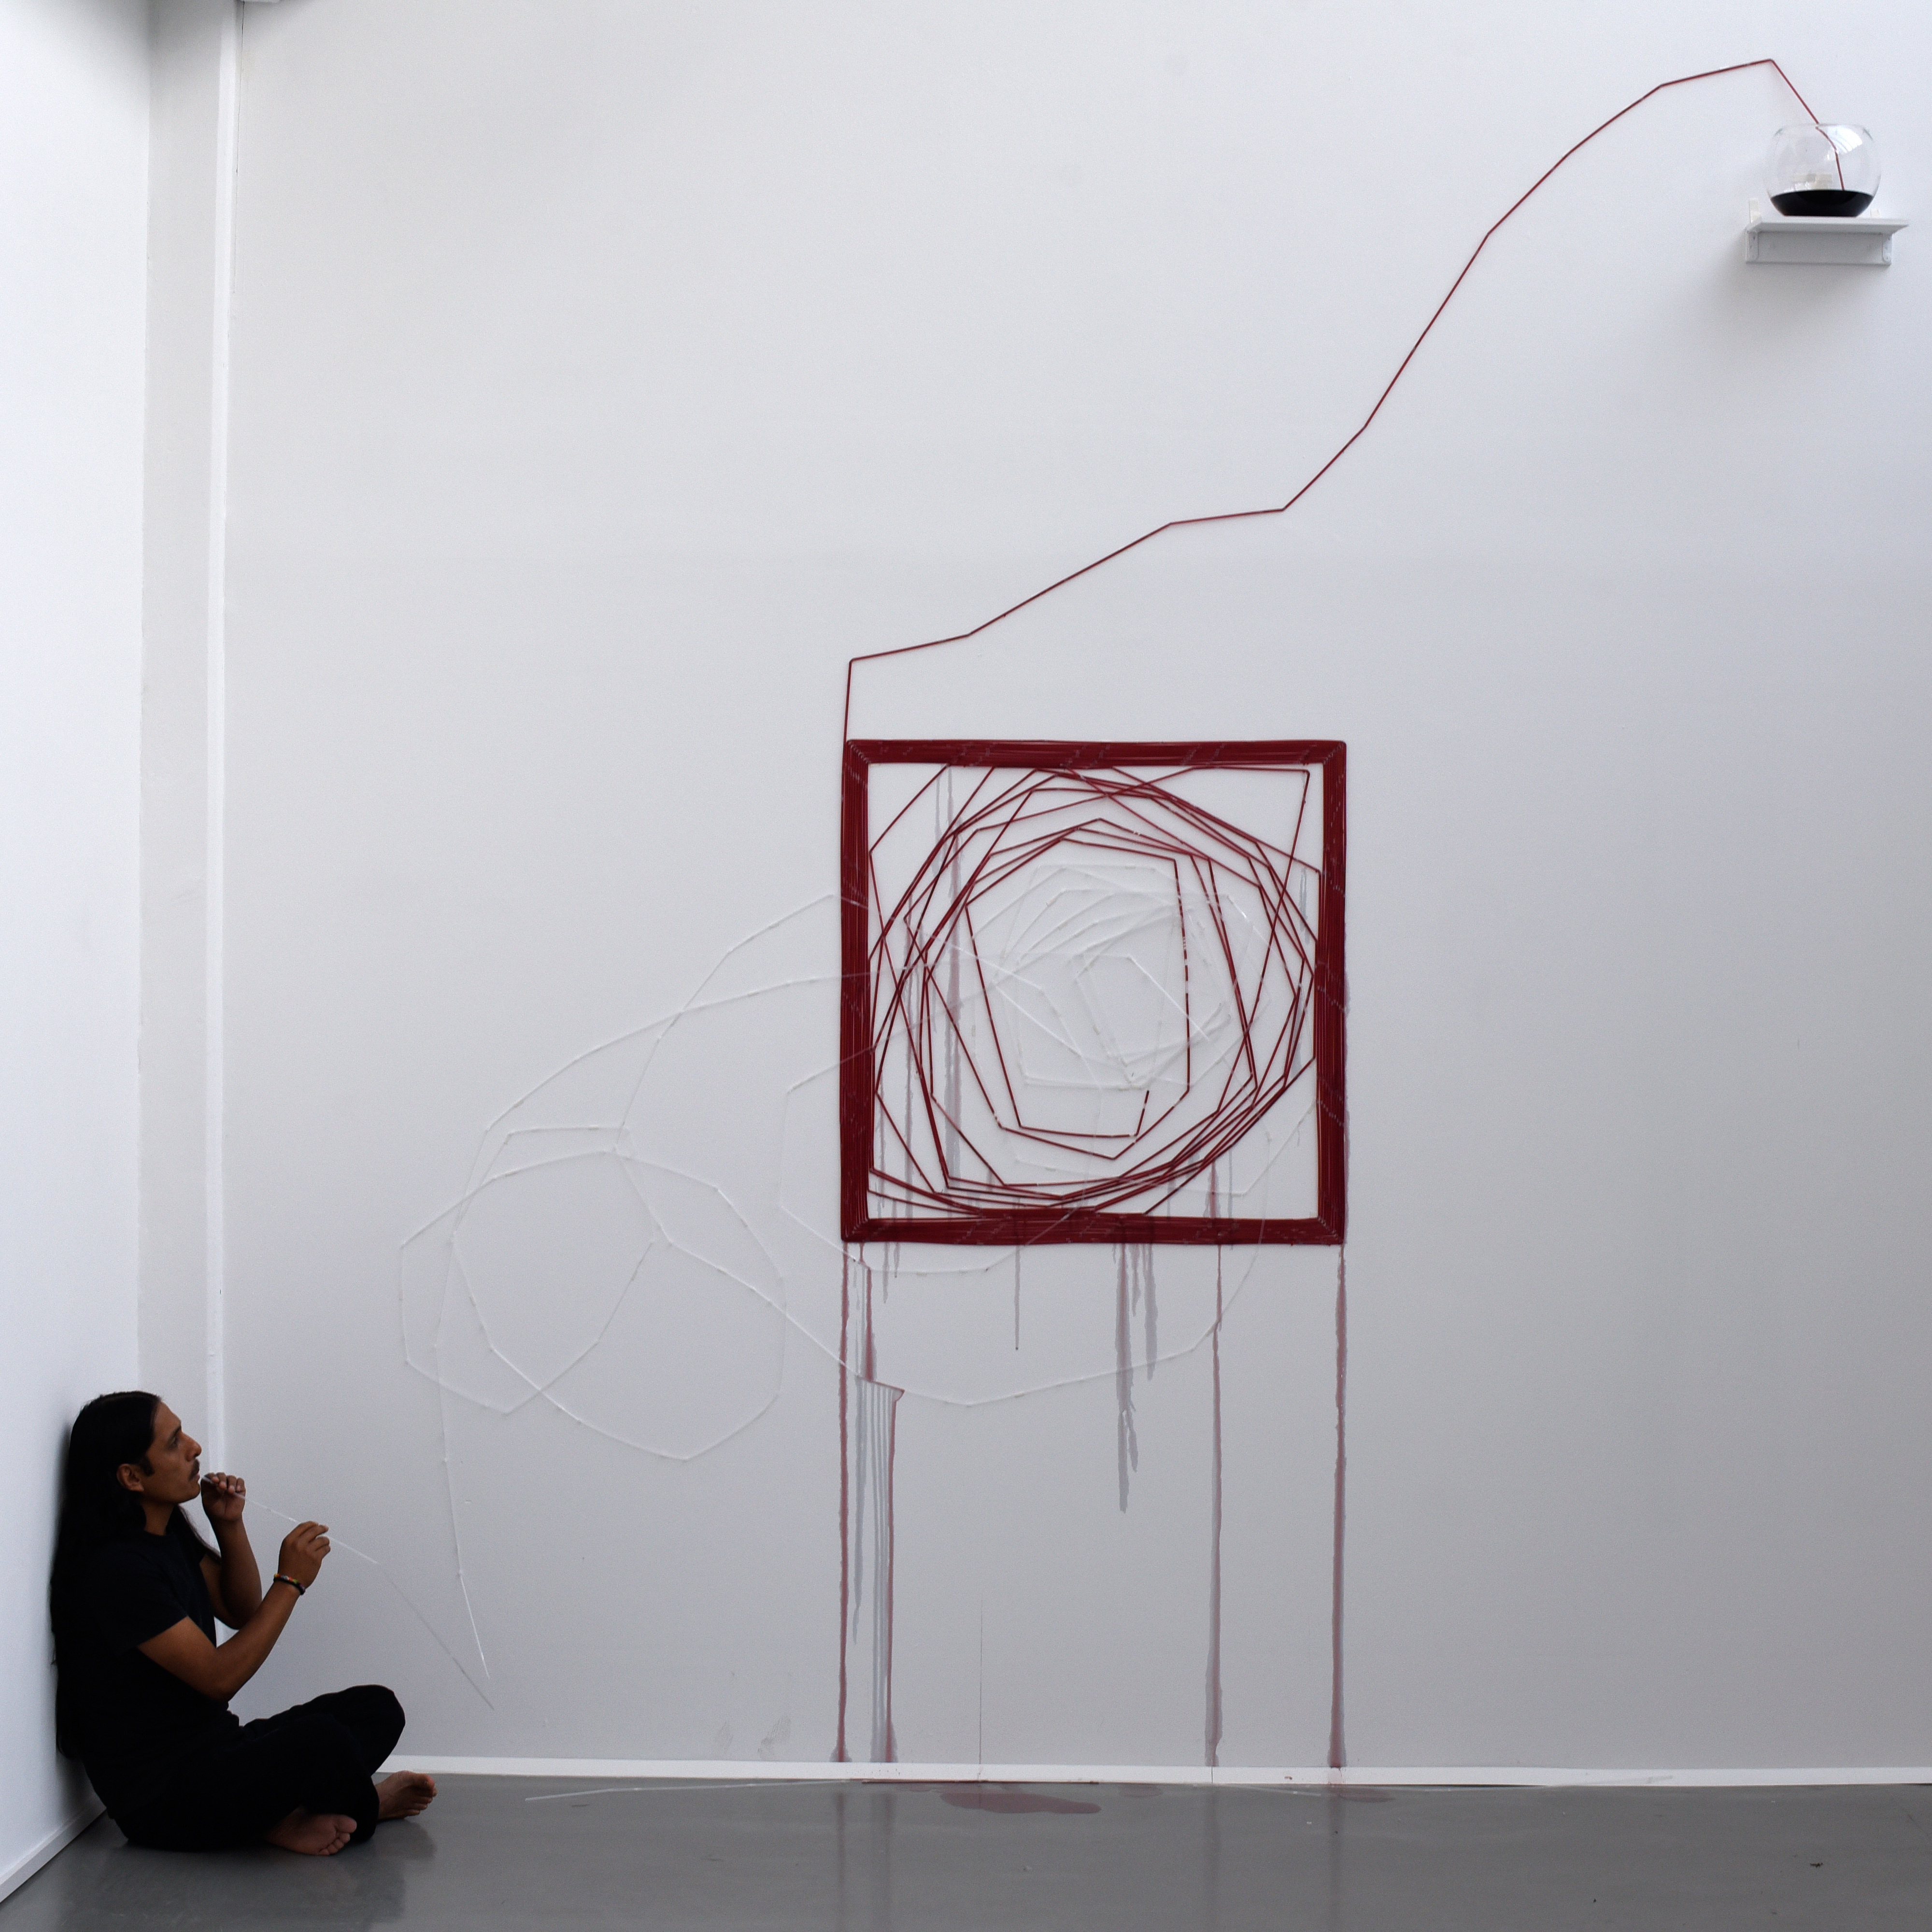 Galerie Barbara Thumm \ In/Tangible